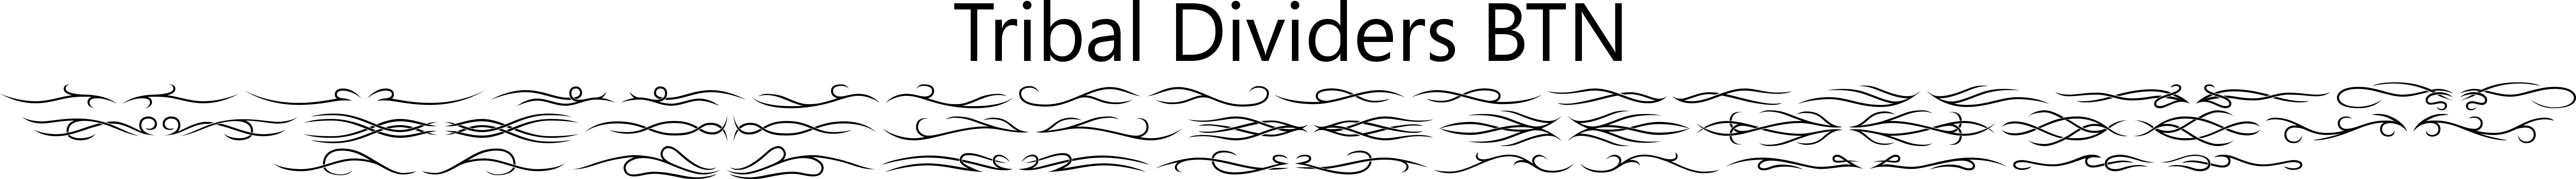 Tribal Dividers BTN